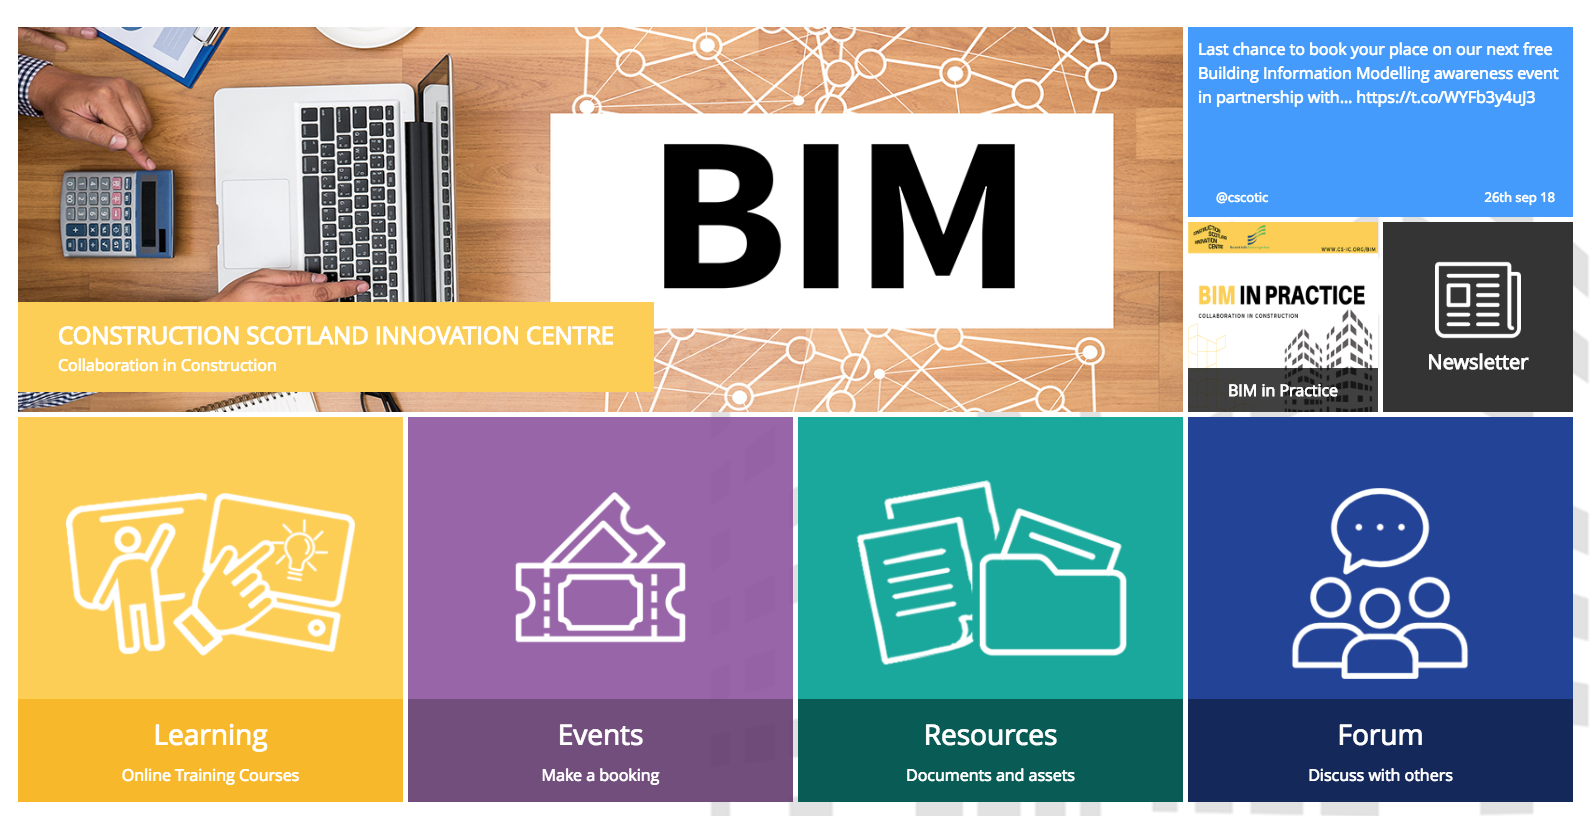 CSIC LAUNCHES FREE BIM E-LEARNING PLATFORM AND INVITES SCOTTISH CONSTRUCTION COMPANIES TO JOIN THE DIGITAL REVOLUTION